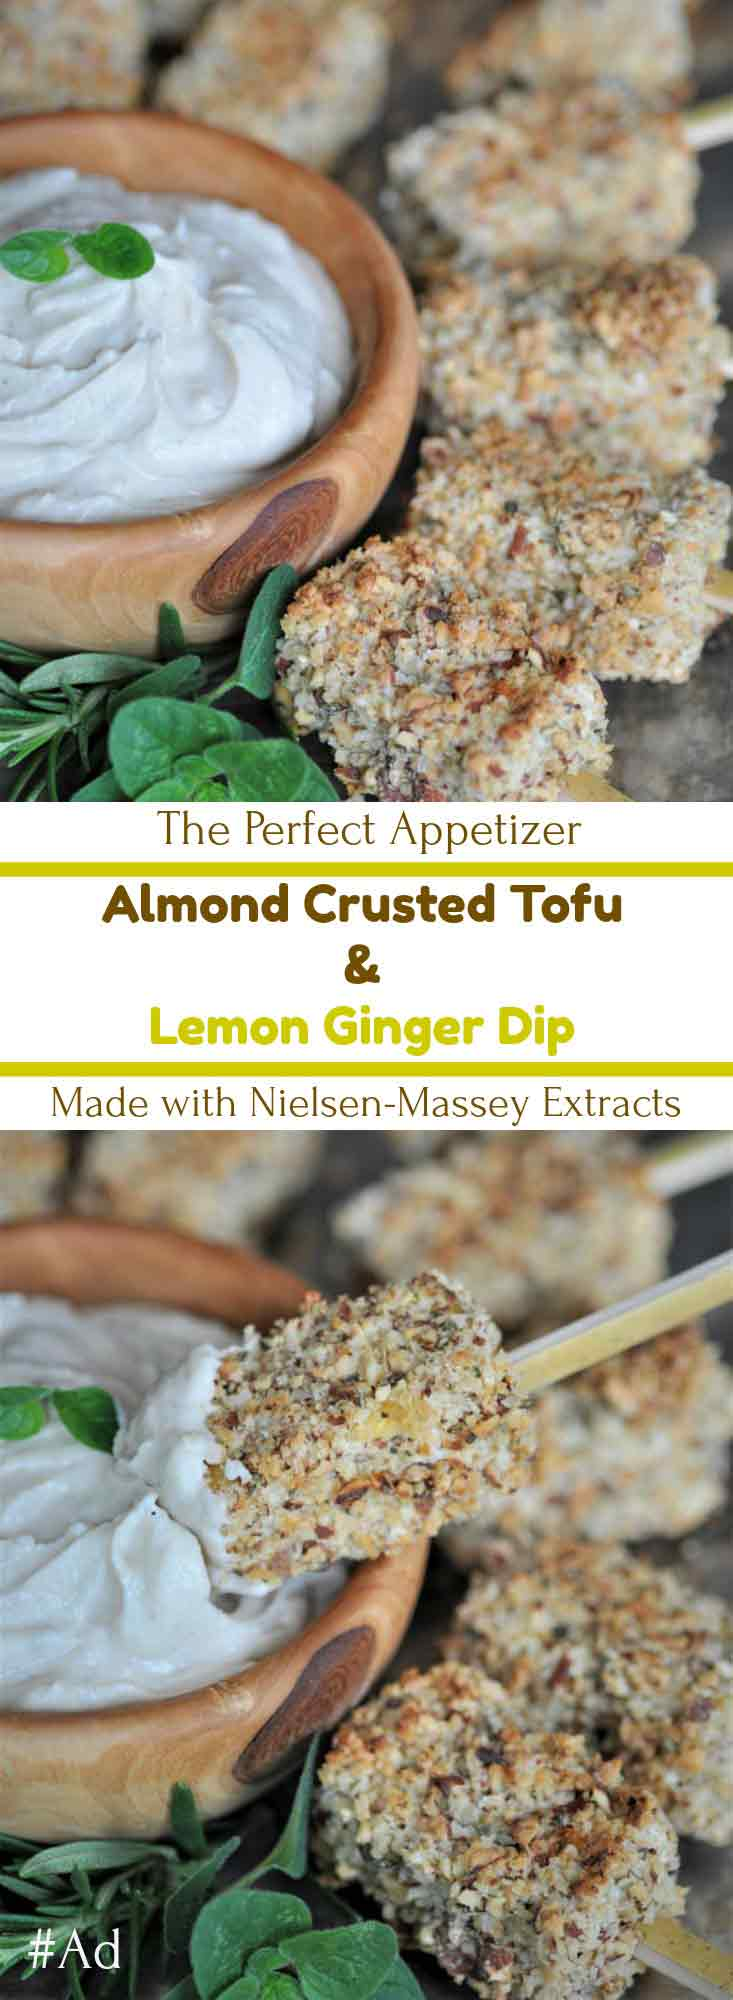 Crunchy and delicious almond crusted tofu bites with a creamy lemon ginger dip. Sponsored by Nielsen-Massey.